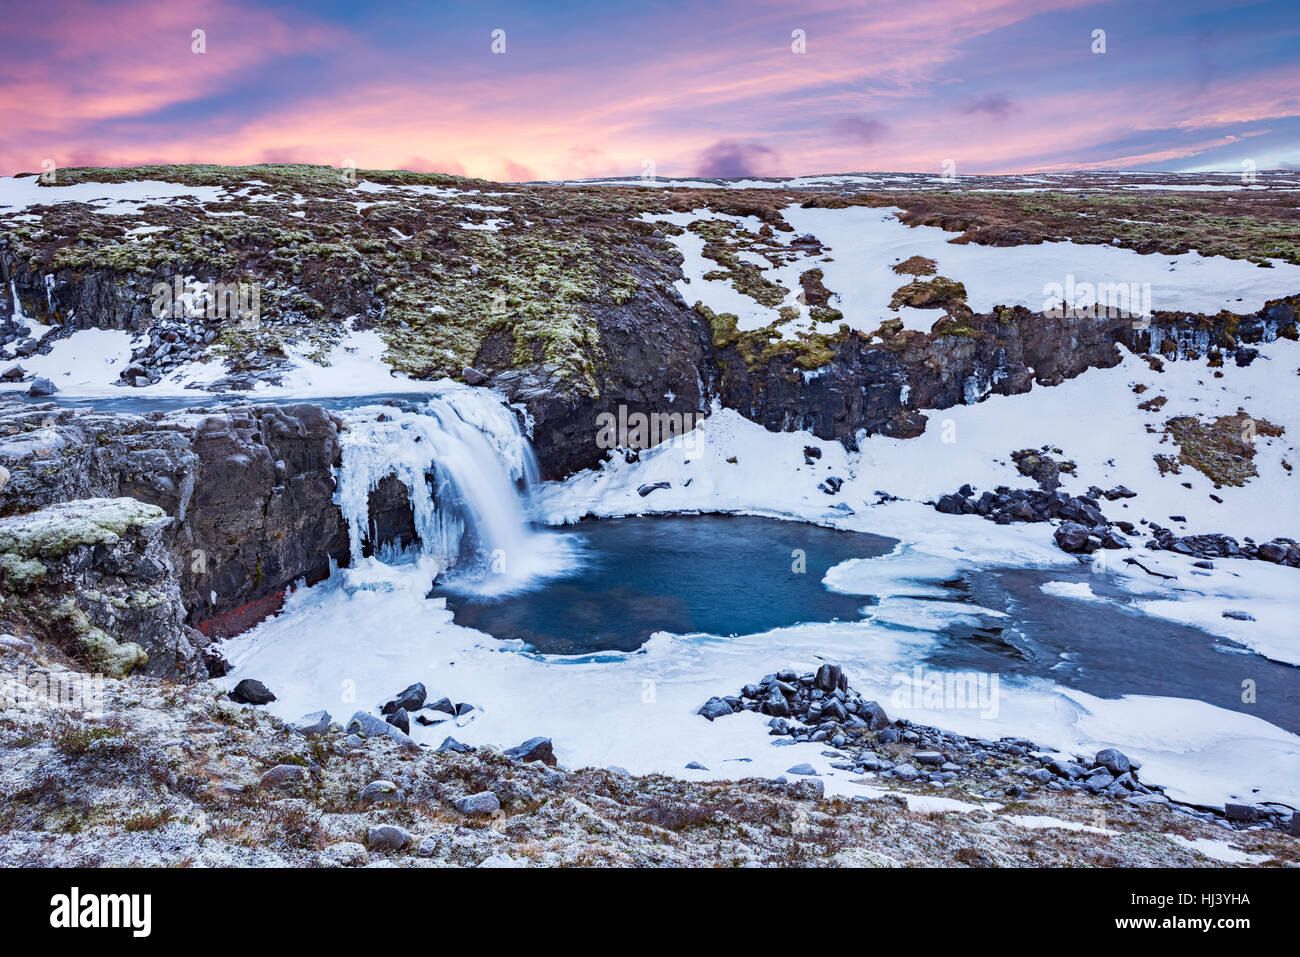 A cold snowy waterfall in the highlands of Iceland framed by pastel skies and rugged terrain offers scenic landscape - Stock Image